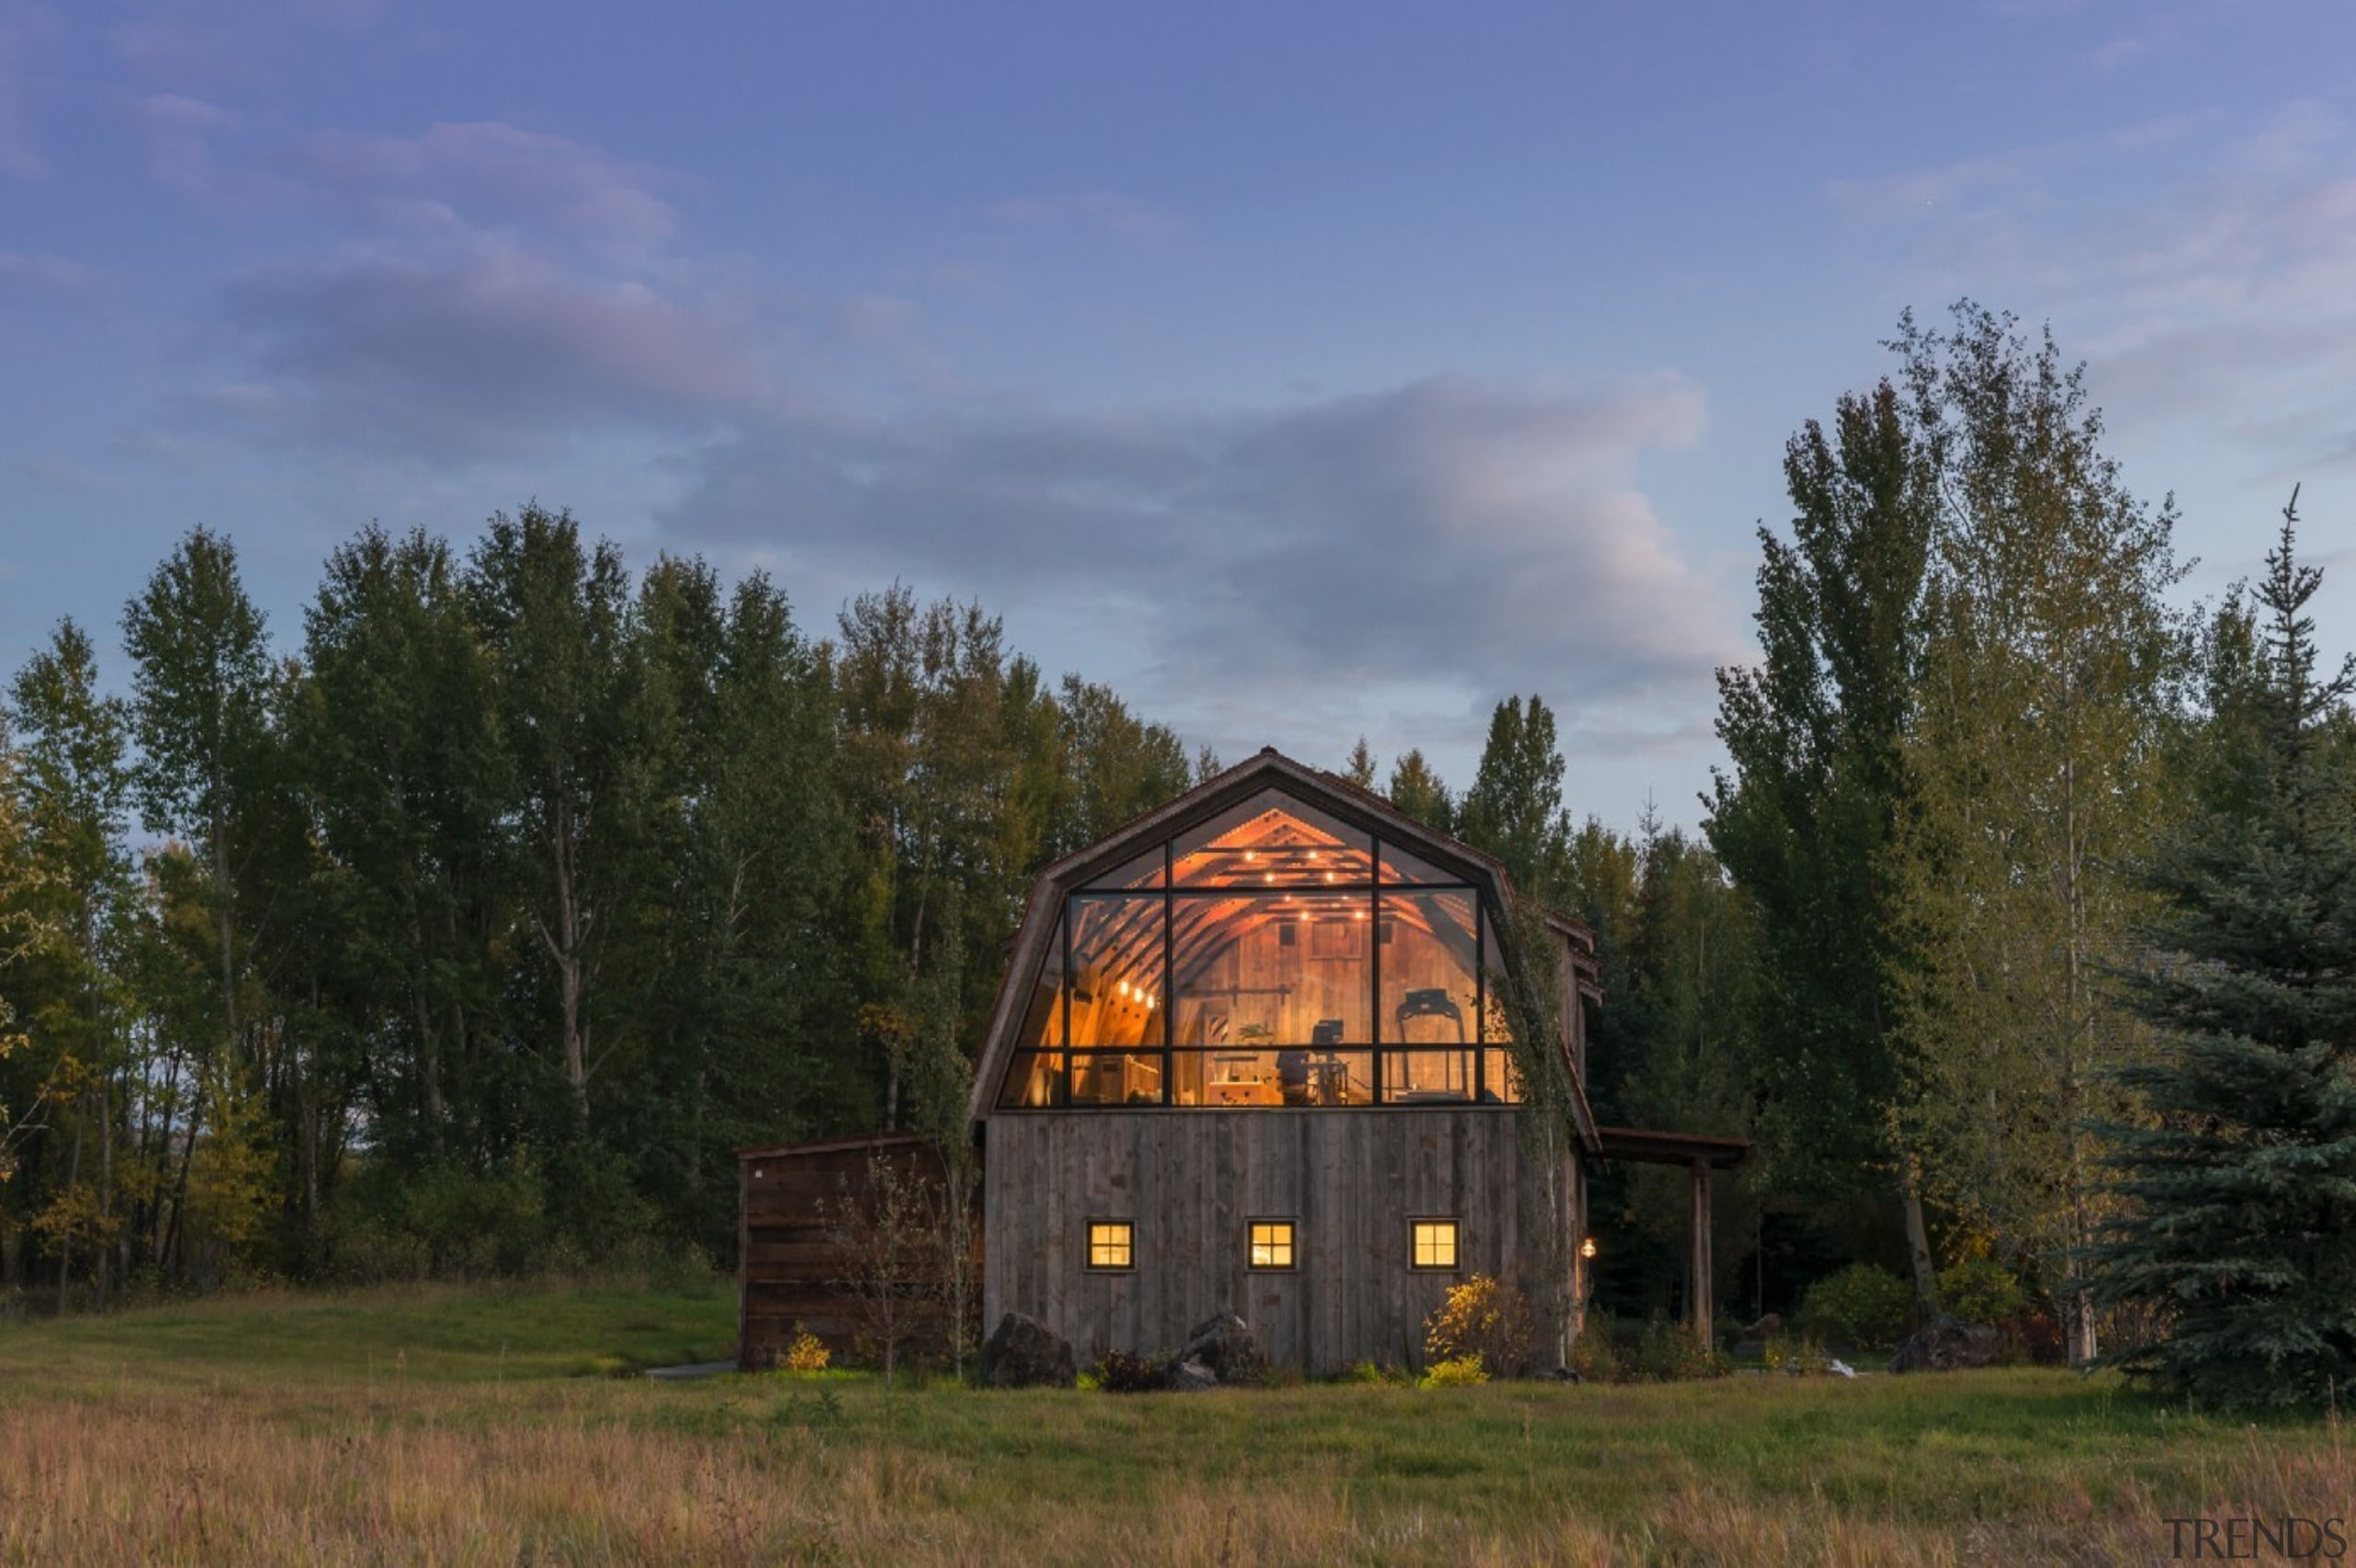 It's still clear you're looking at a barn barn, cloud, cottage, farm, farmhouse, field, grass, home, house, hut, landscape, log cabin, meadow, prairie, property, real estate, rural area, shack, sky, tree, brown, blue